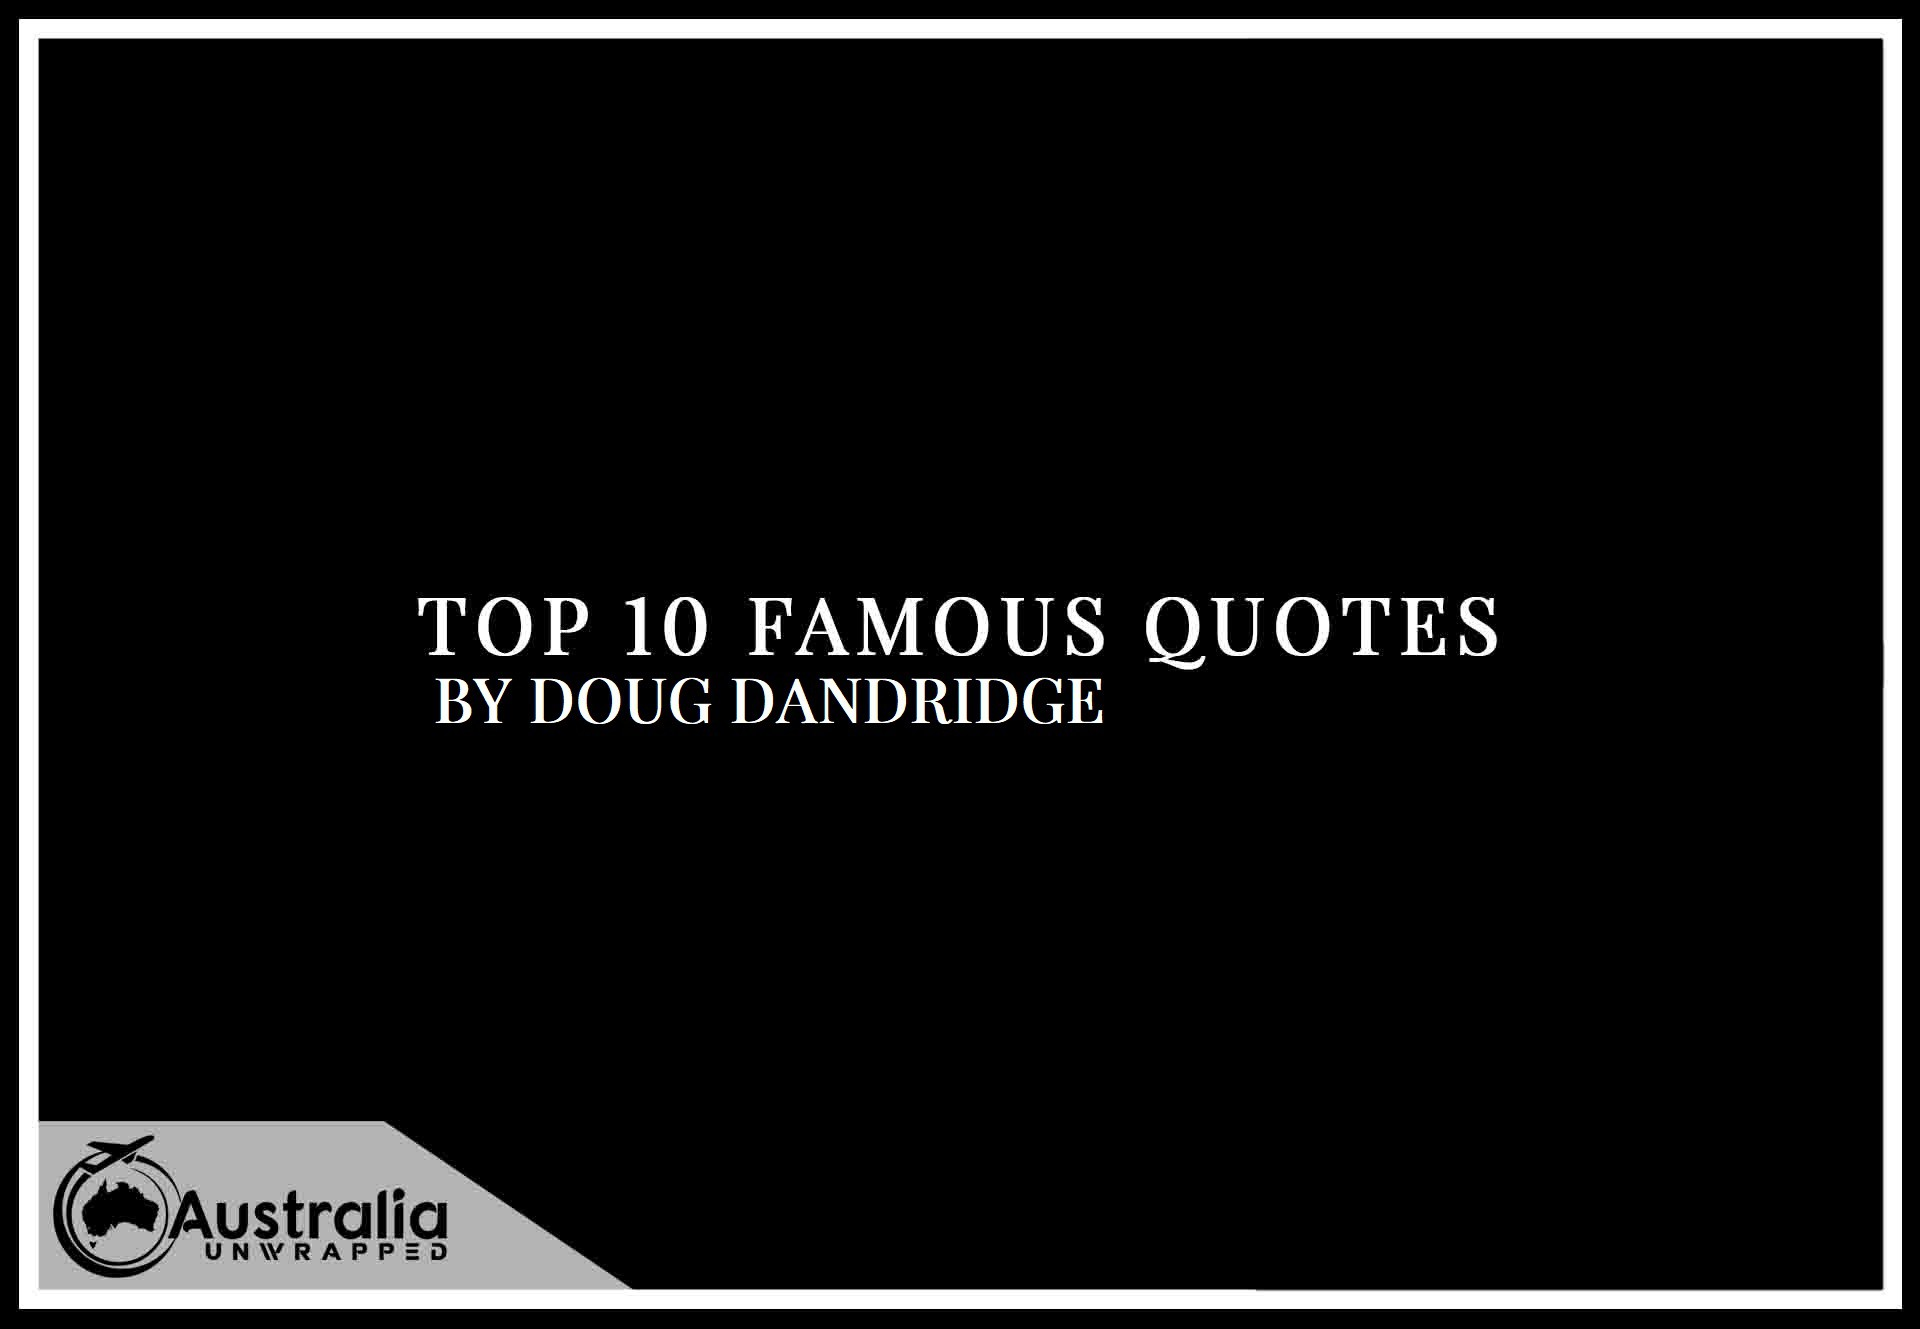 Top 10 Famous Quotes by Author Doug Dandridge